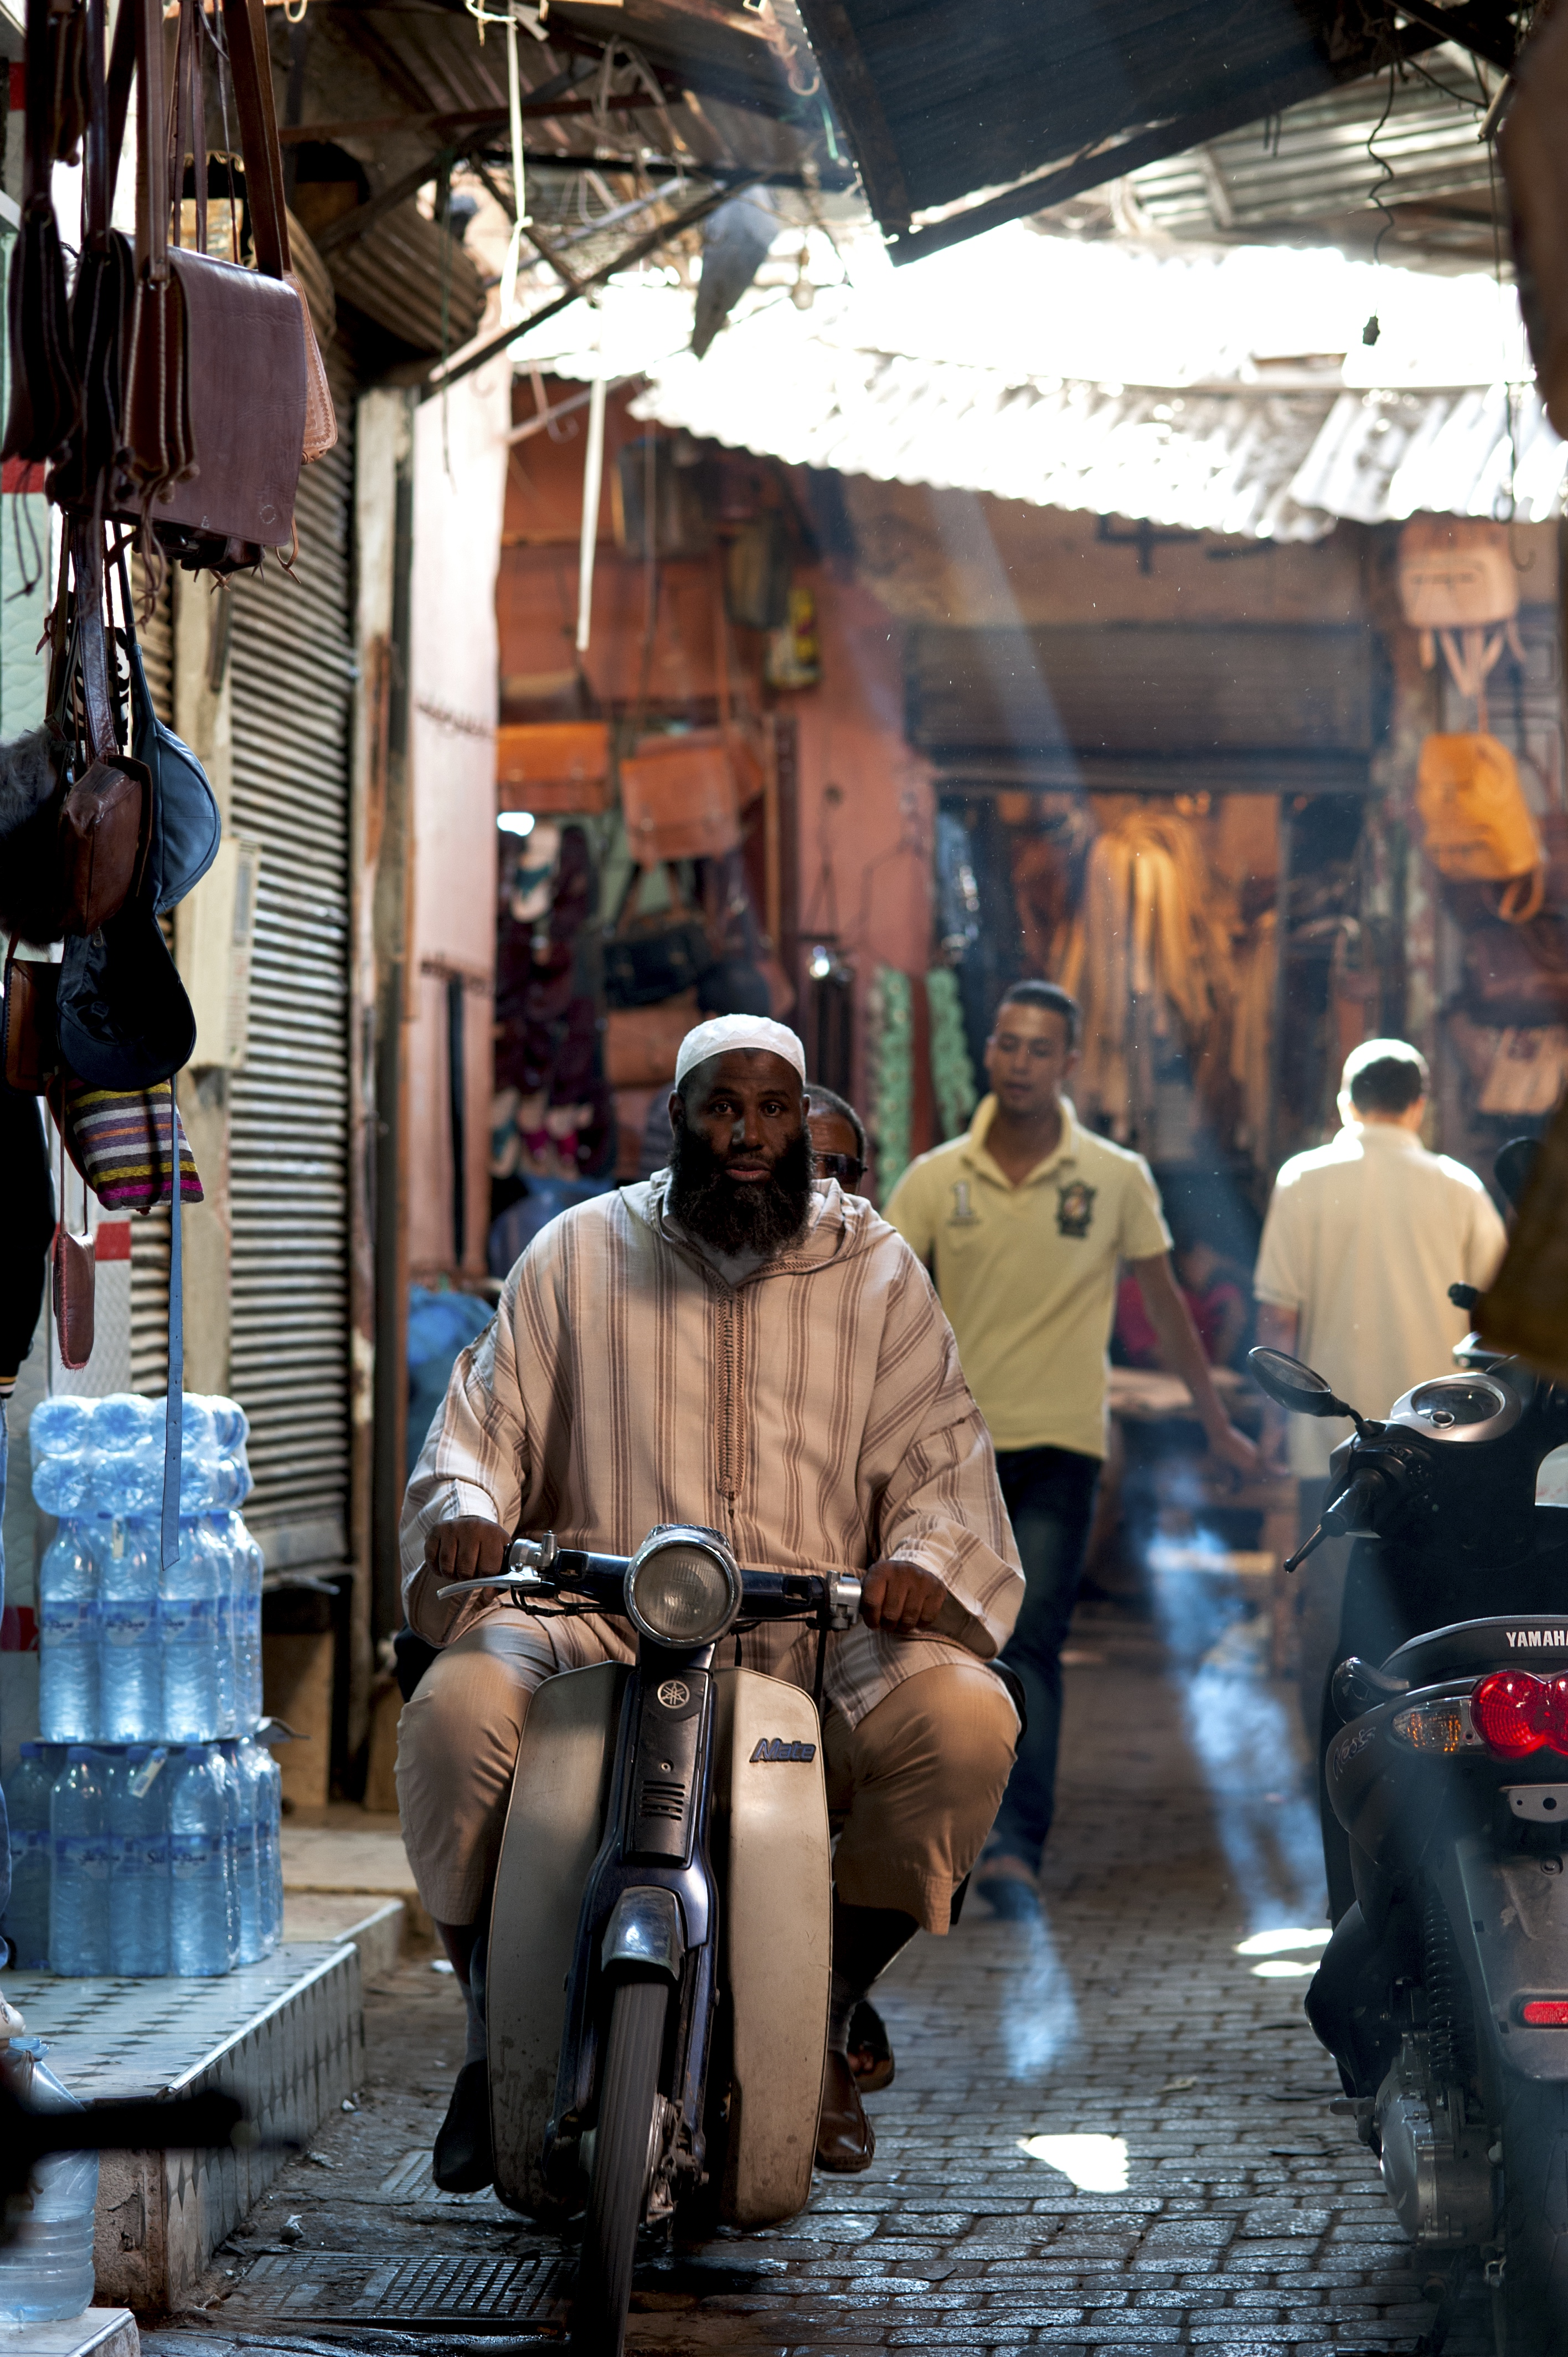 Scooter in Souk, Marrakesh